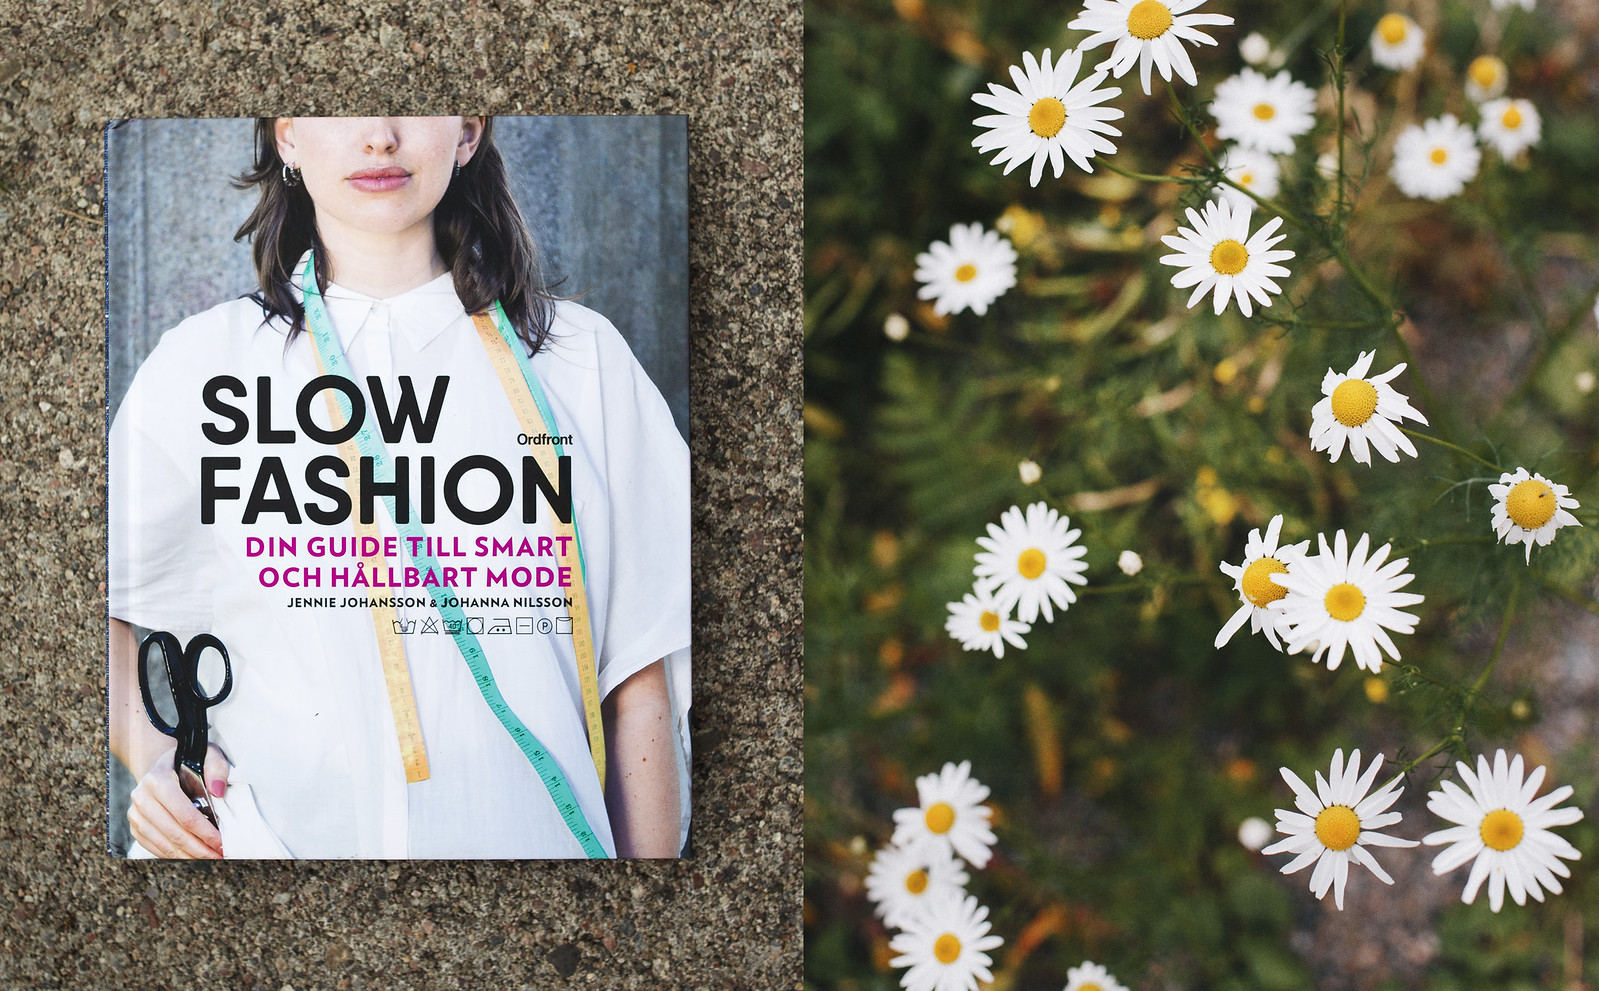 slow-fashion-1